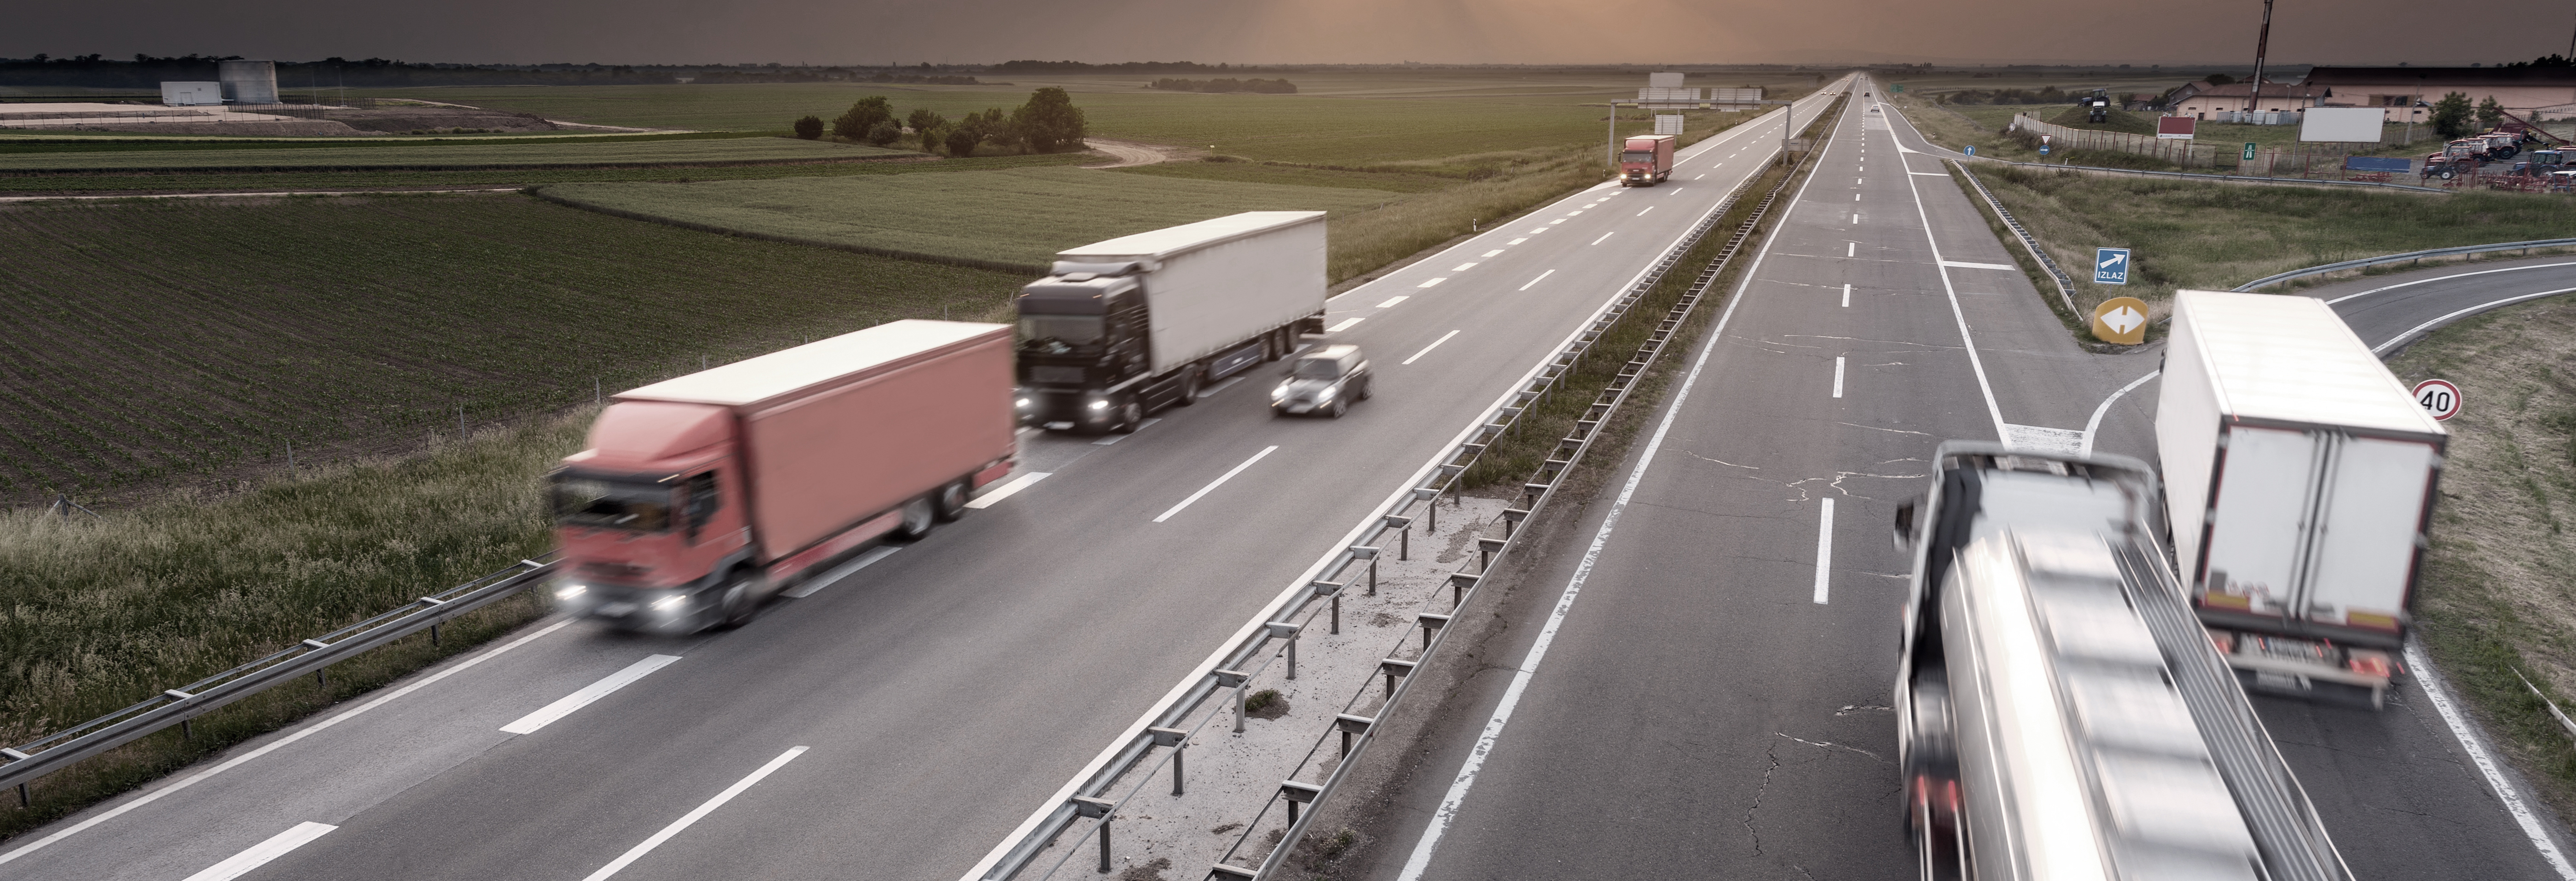 Trucks on Highway - NaviTrans